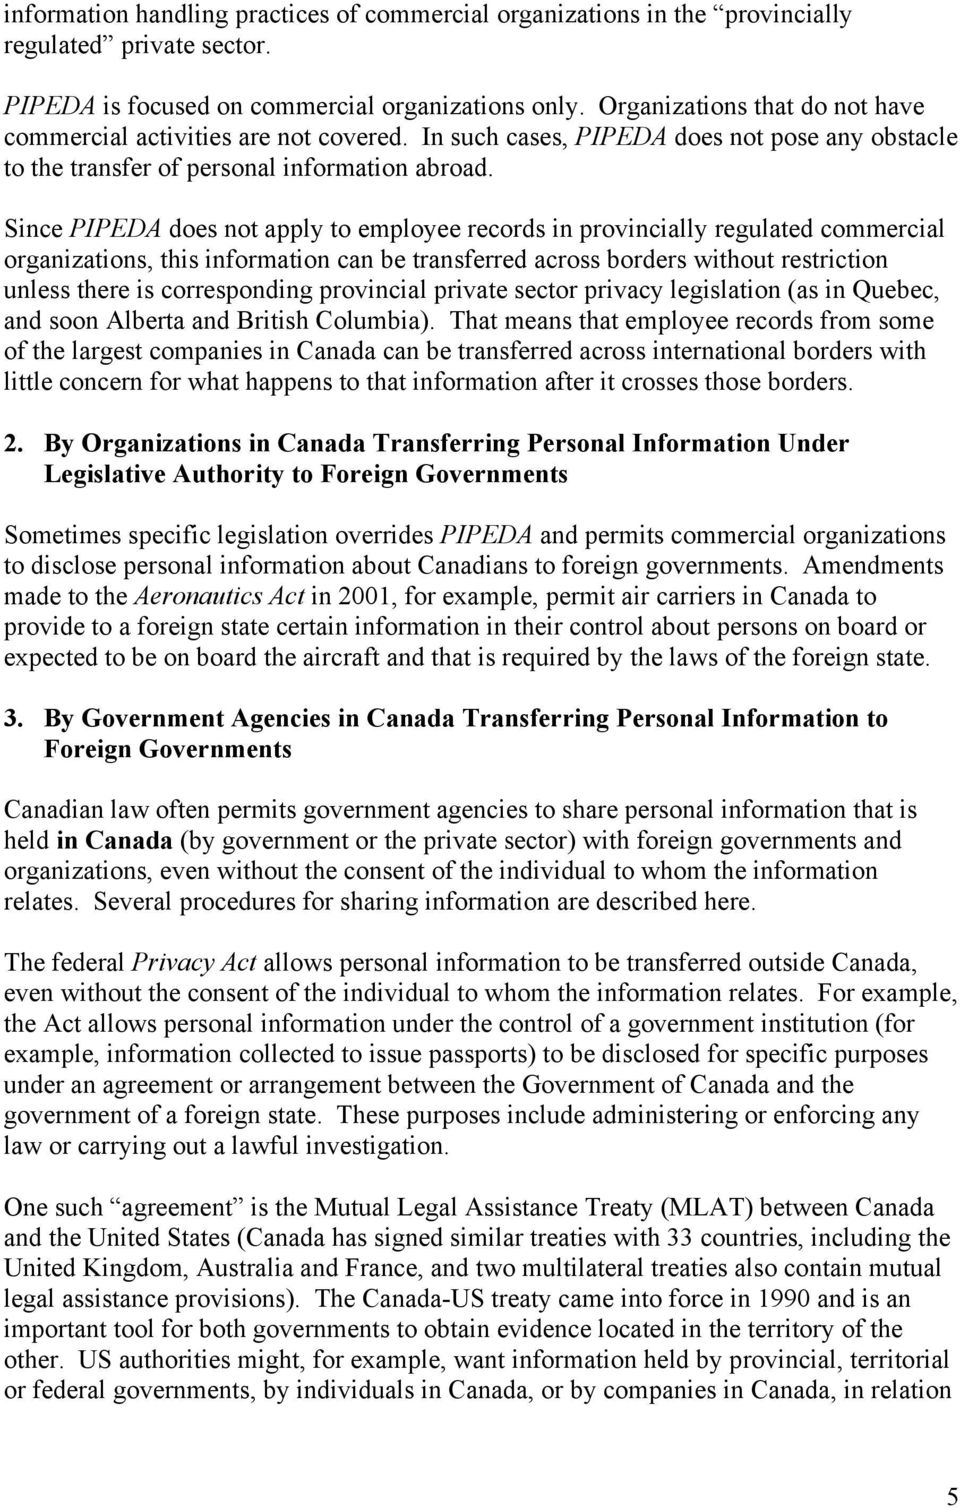 Since PIPEDA does not apply to employee records in provincially regulated commercial organizations, this information can be transferred across borders without restriction unless there is